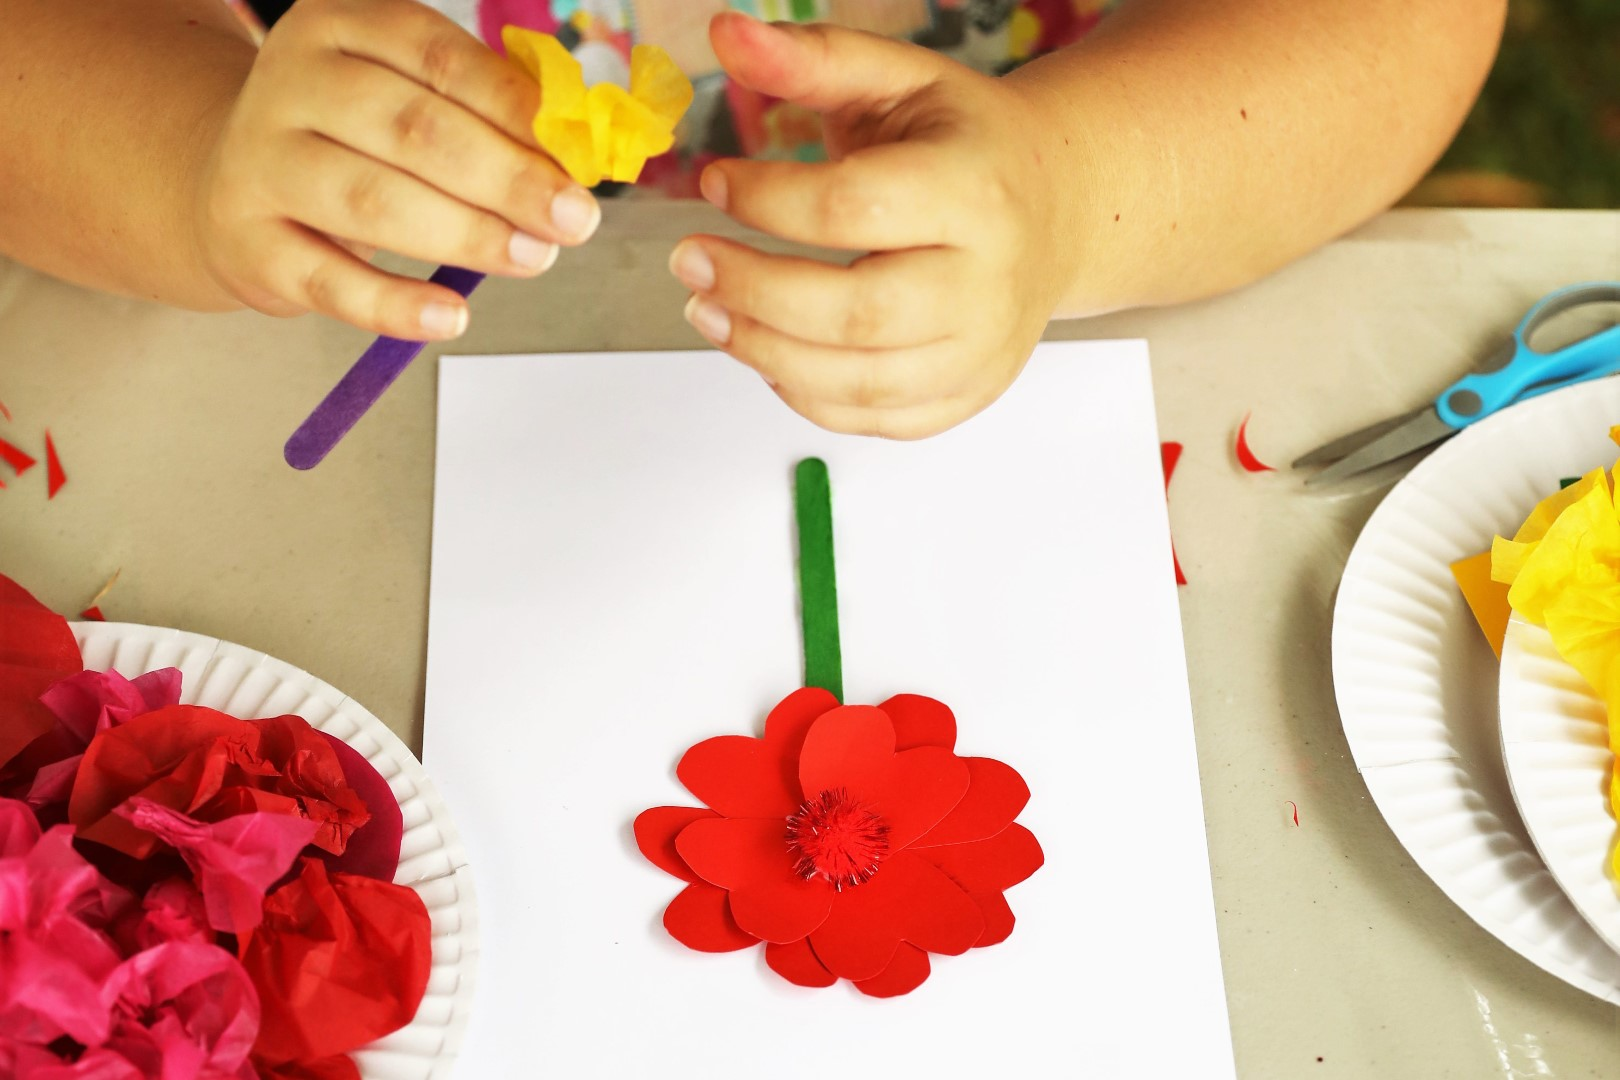 Young child making flowers at an arts and crafts event